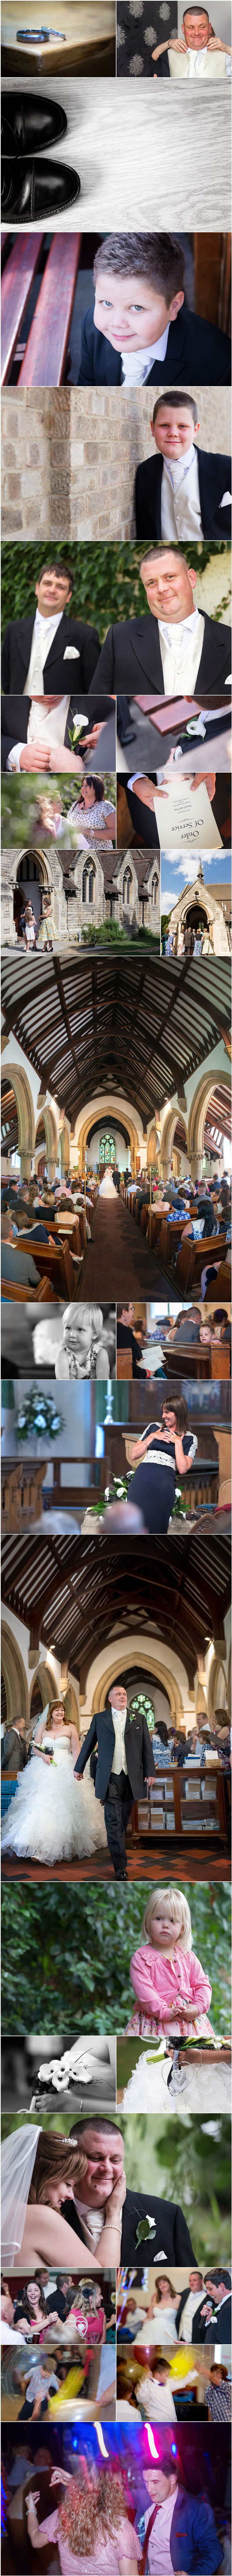 Wedding photography-harlow-essex